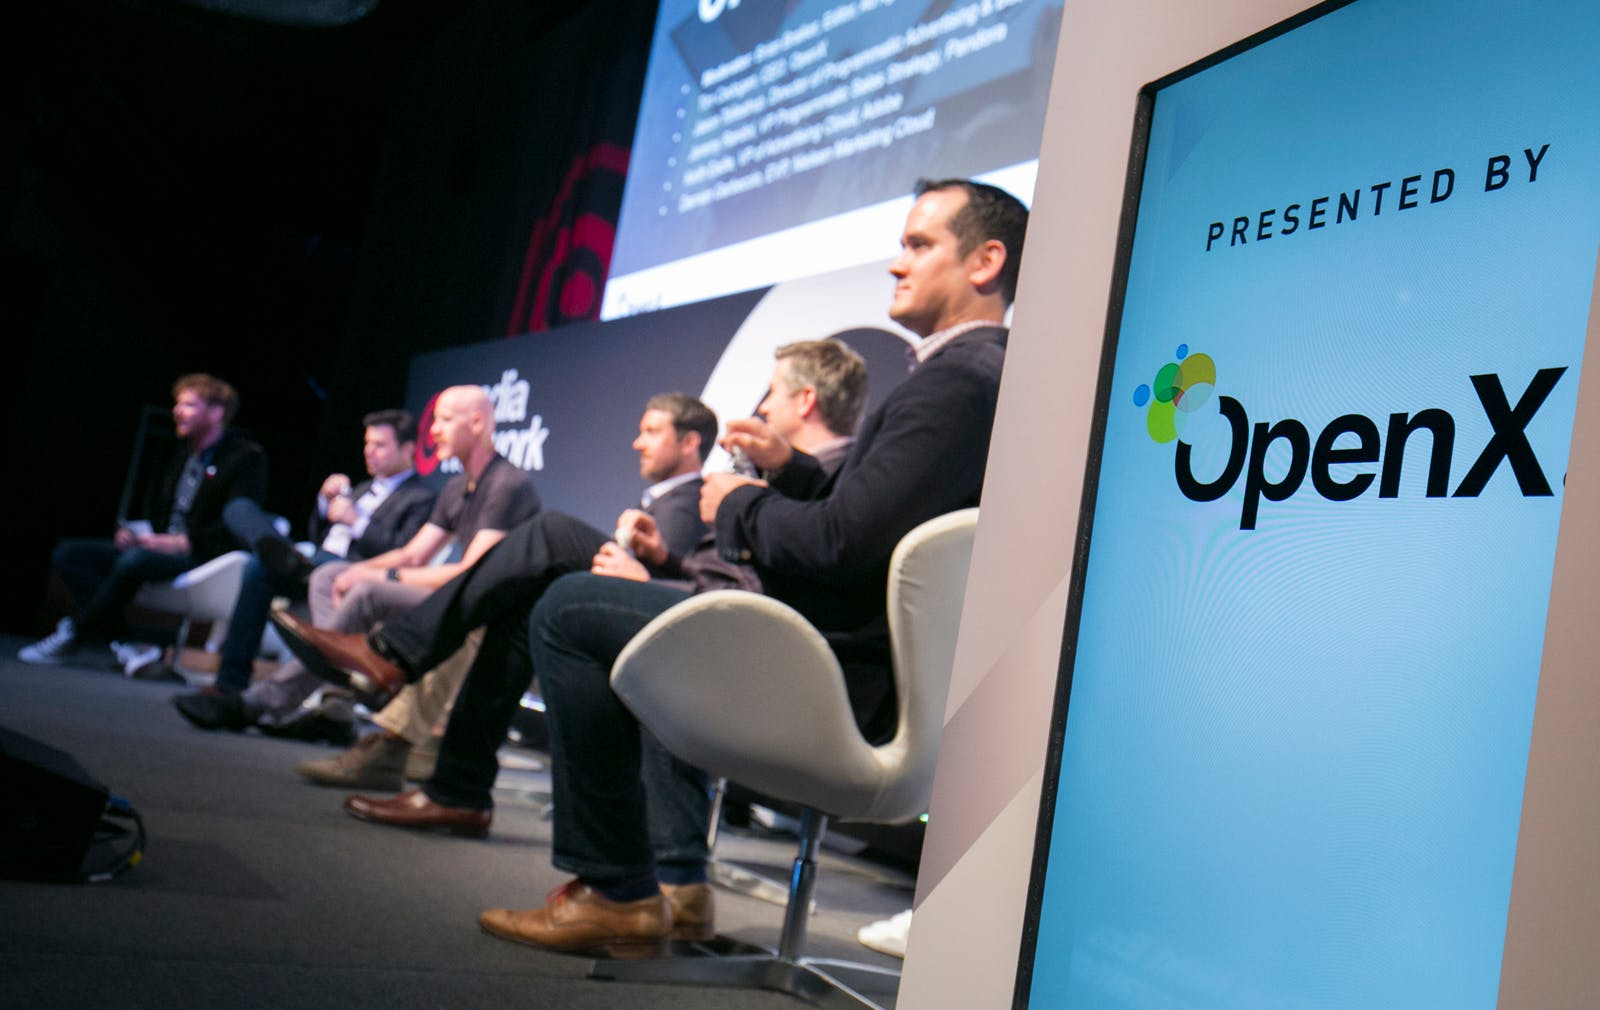 OX AdvertisingWeek Images7 - AdWeek New York 2017: What's Next for Ad Tech and Programmatic?